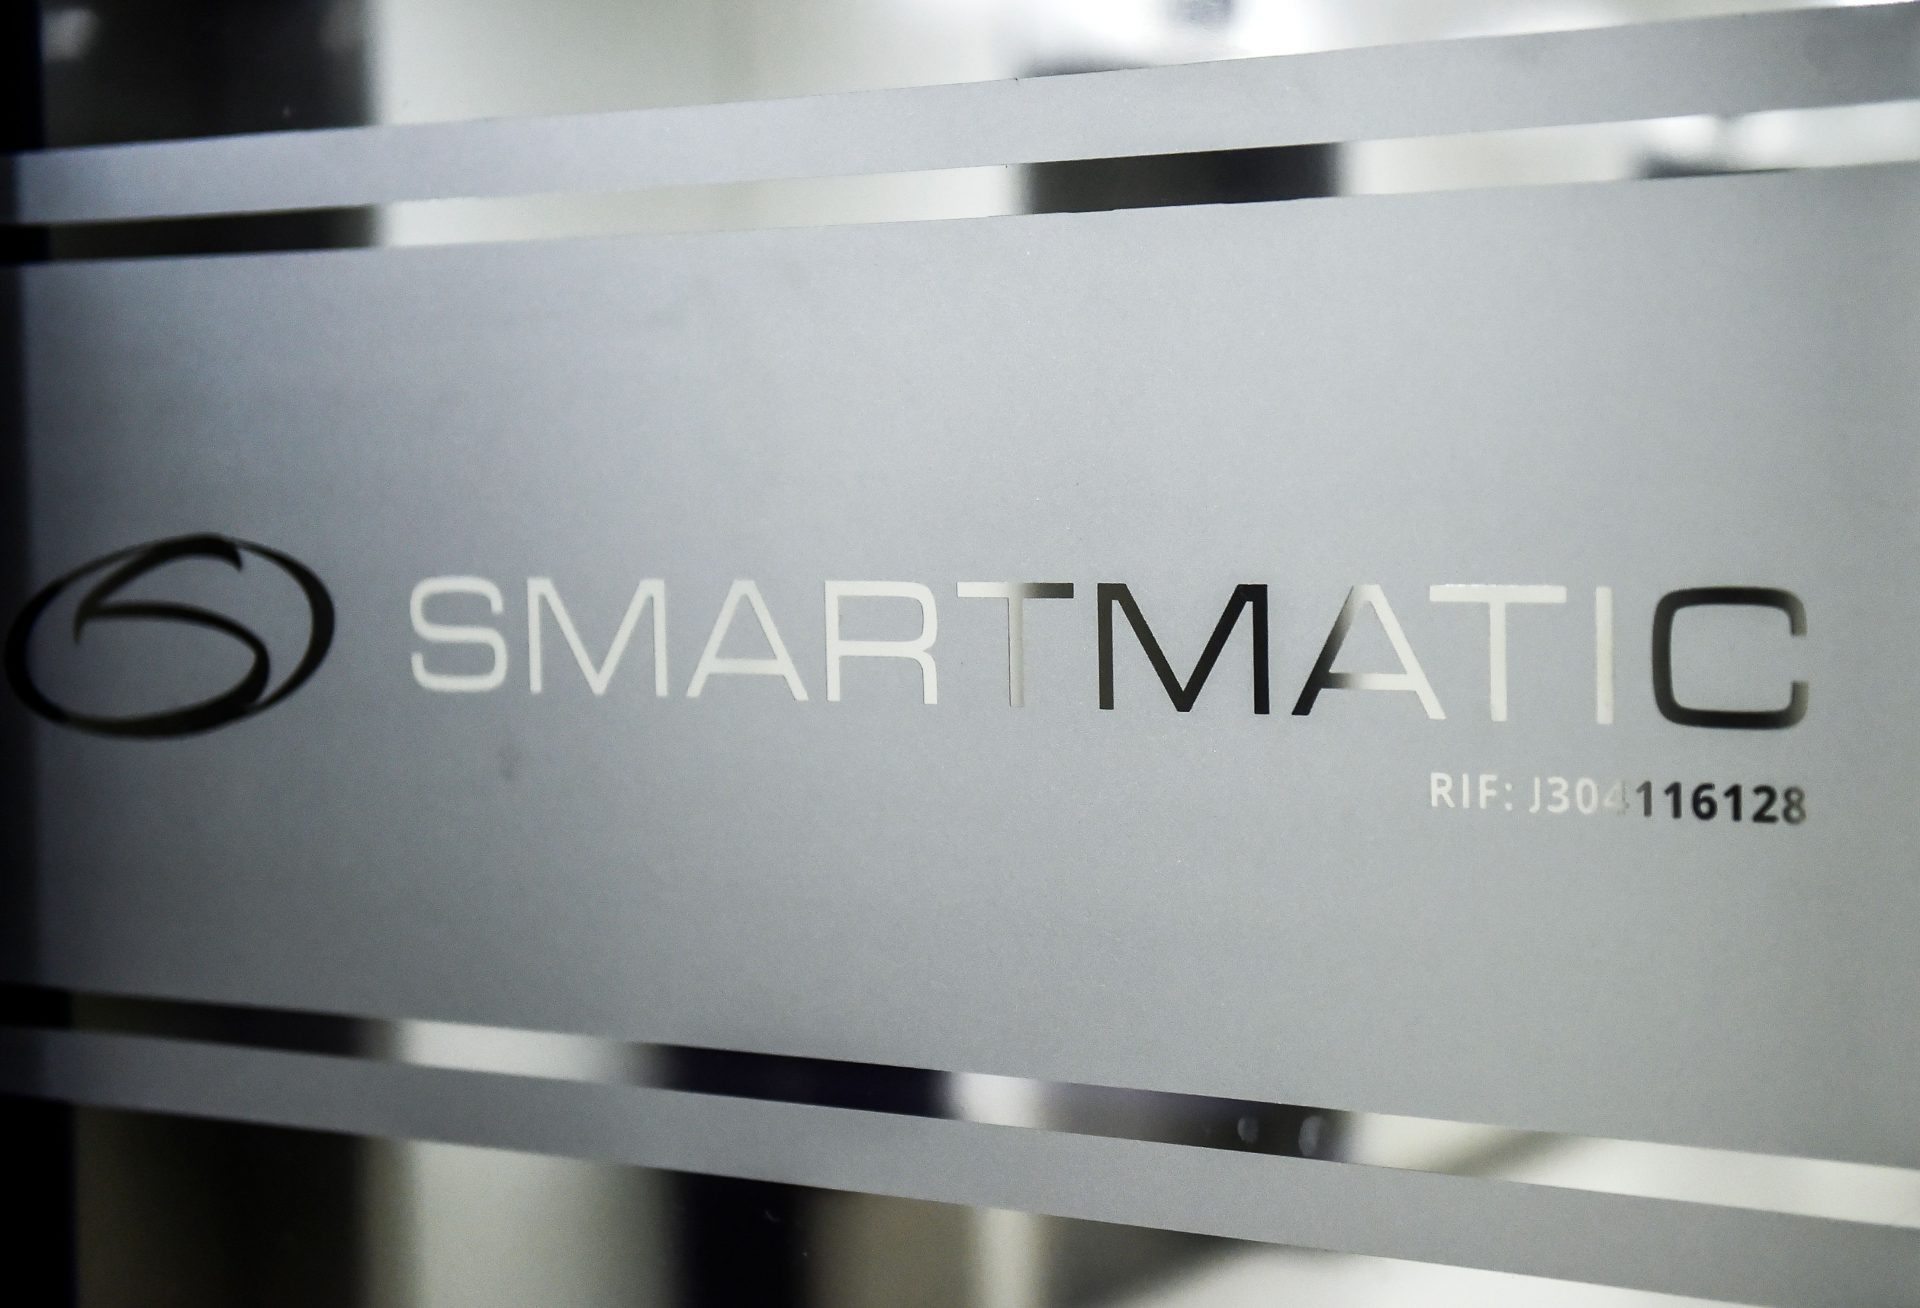 Logo of Smartmatic, the software used in Dominion voting machines. (Image: RONALDO SCHEMIDT/Getty Images via Getty Images